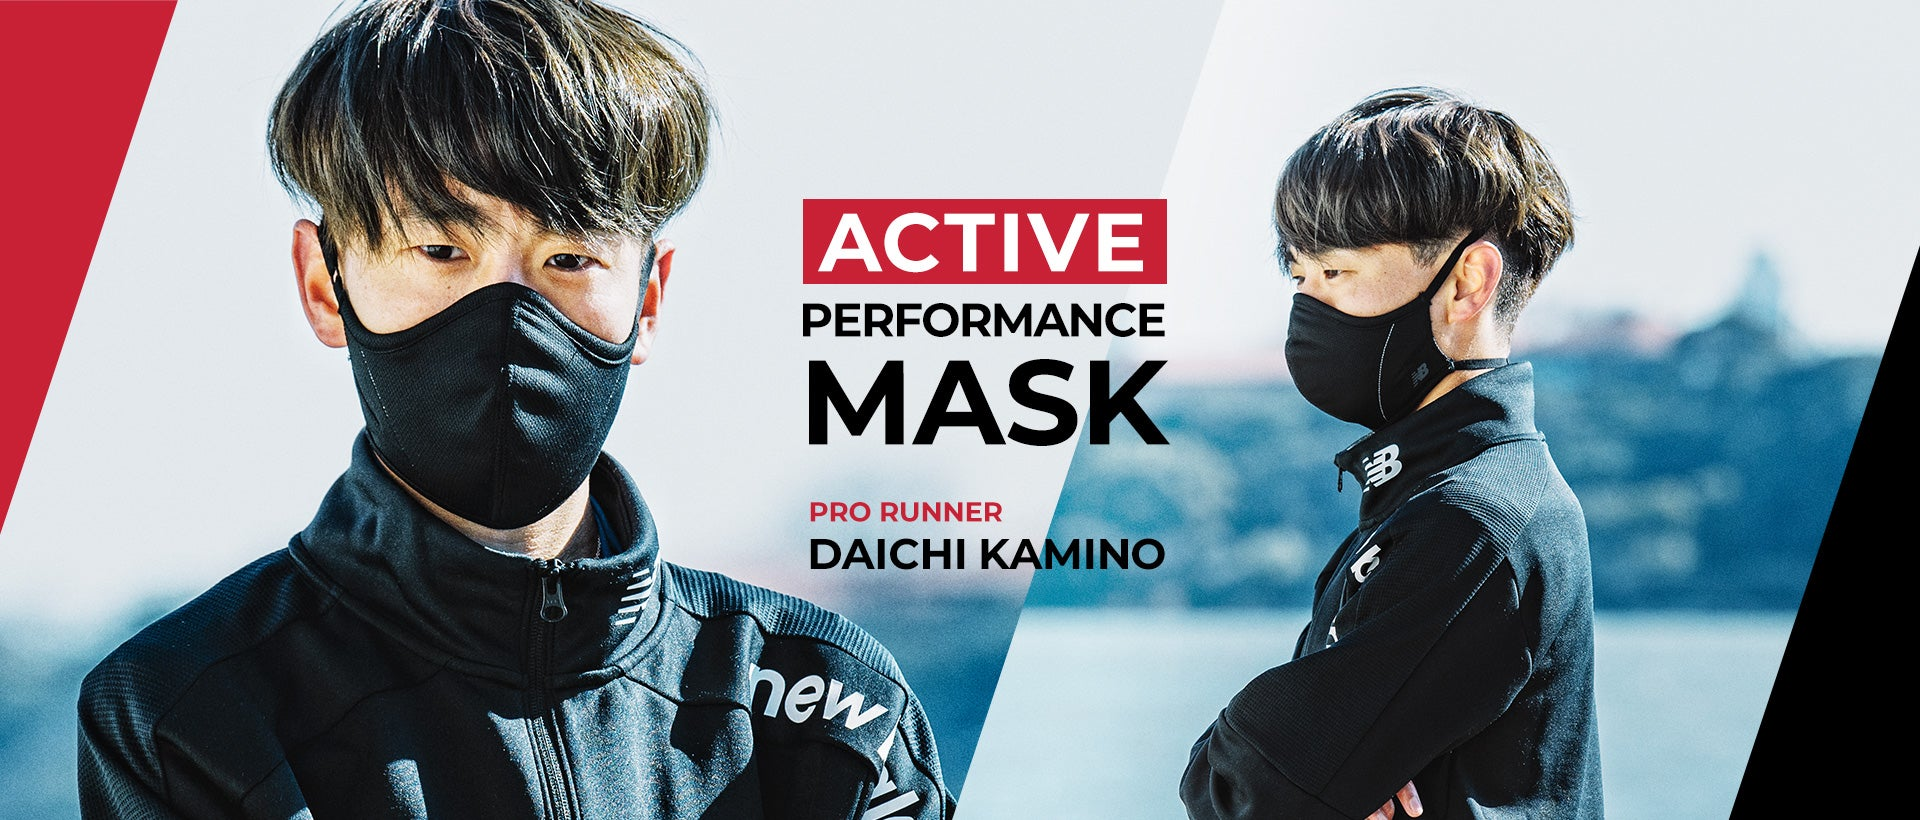 Active Performance Mask. Pro Runner DAICHI KAMINO